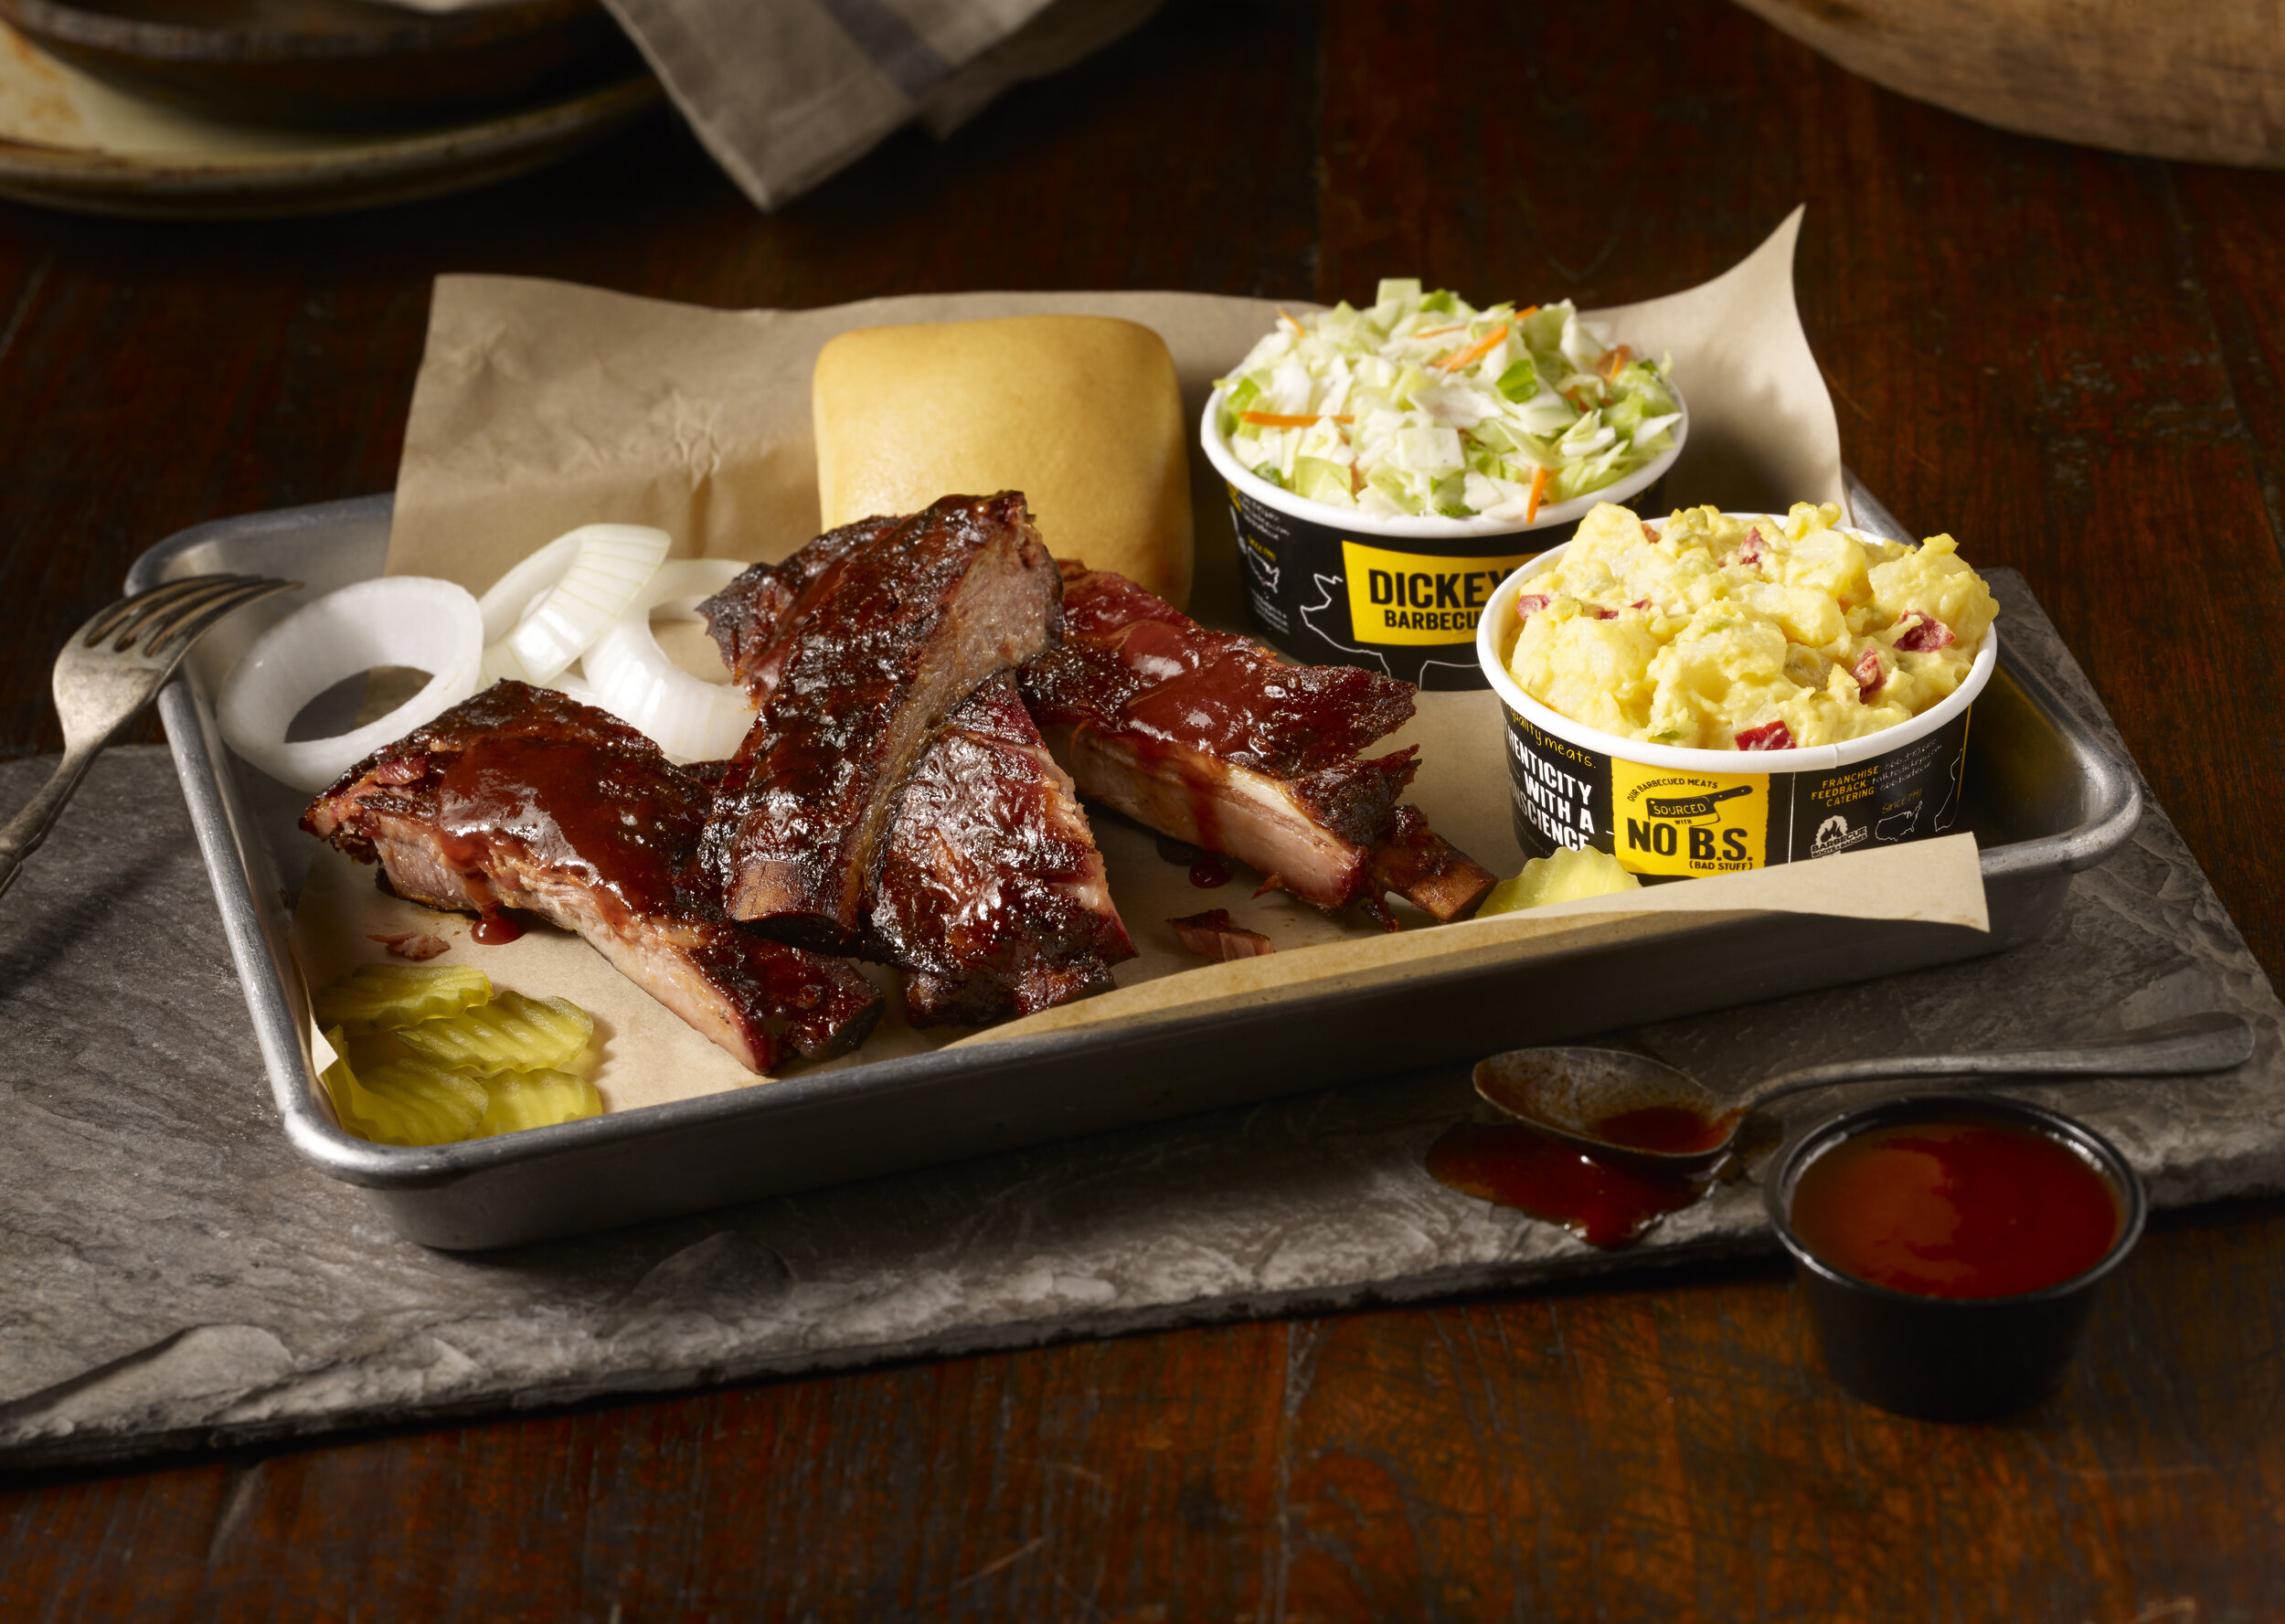 Dickeys-Barbecue-Franchise-Products-Ribs-Plate.jpg